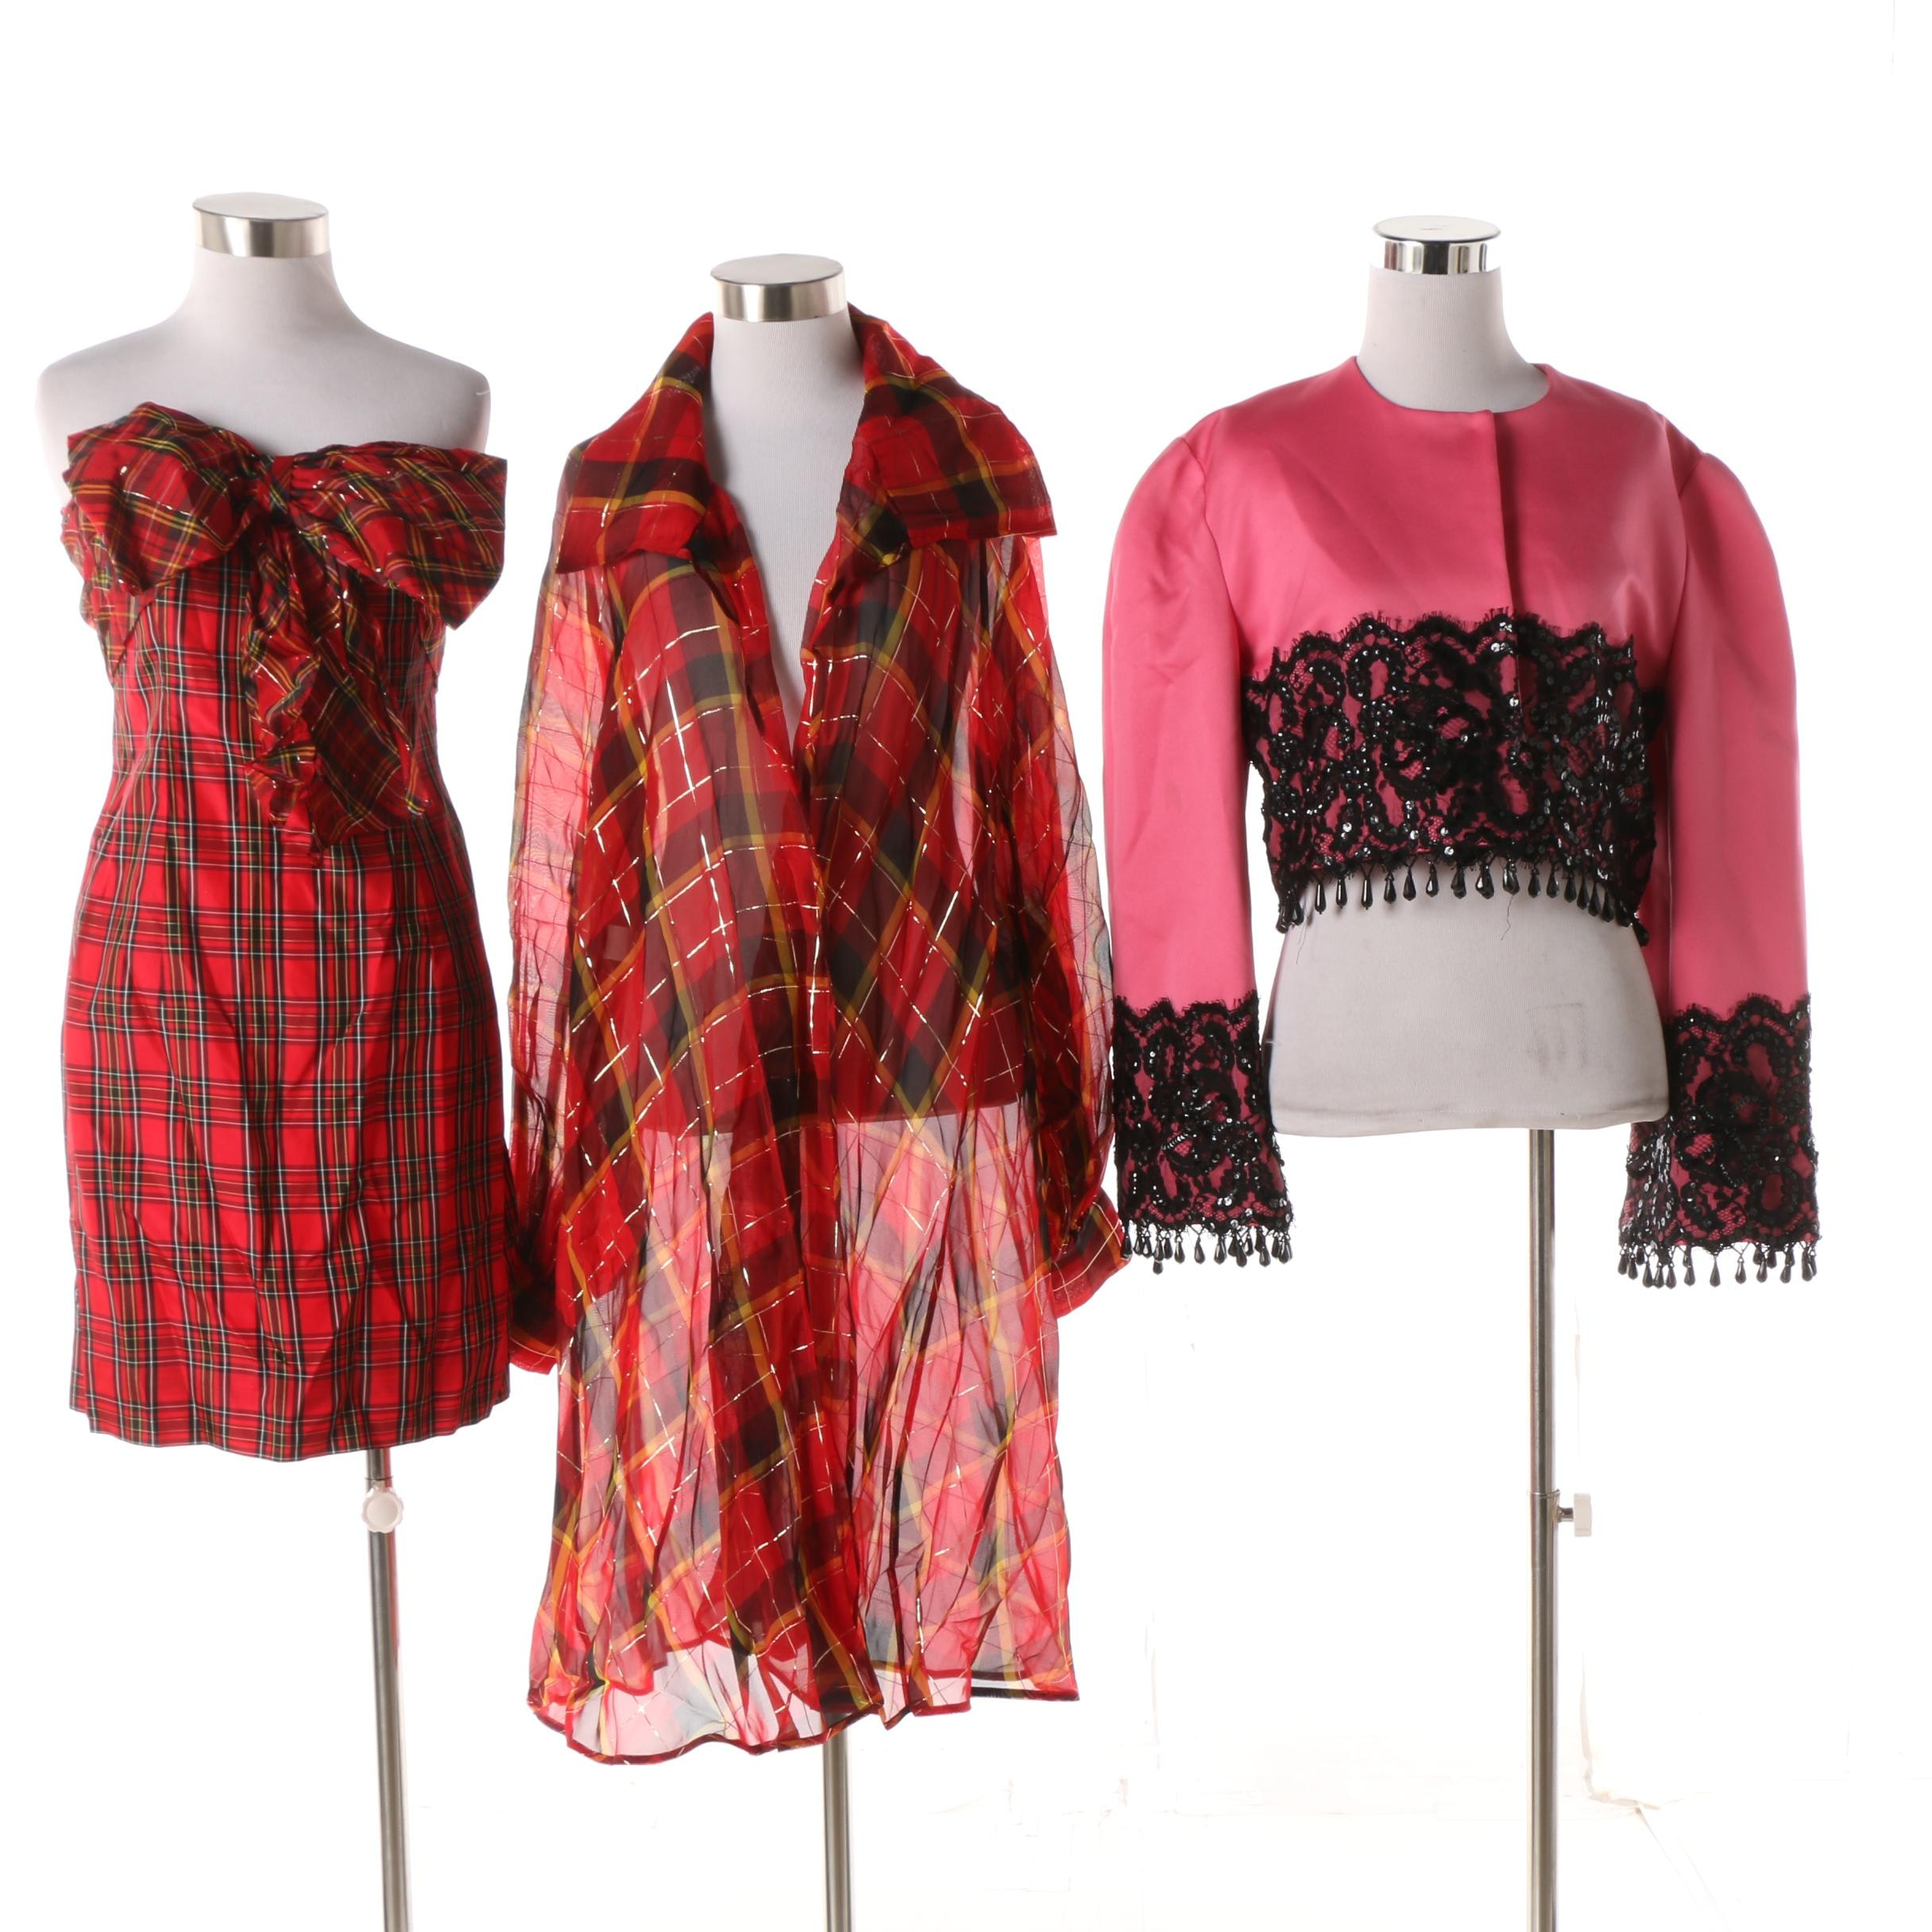 1980s-1990s Victor Costa Plaid Strapless Dress, Jacket and Beaded Jacket